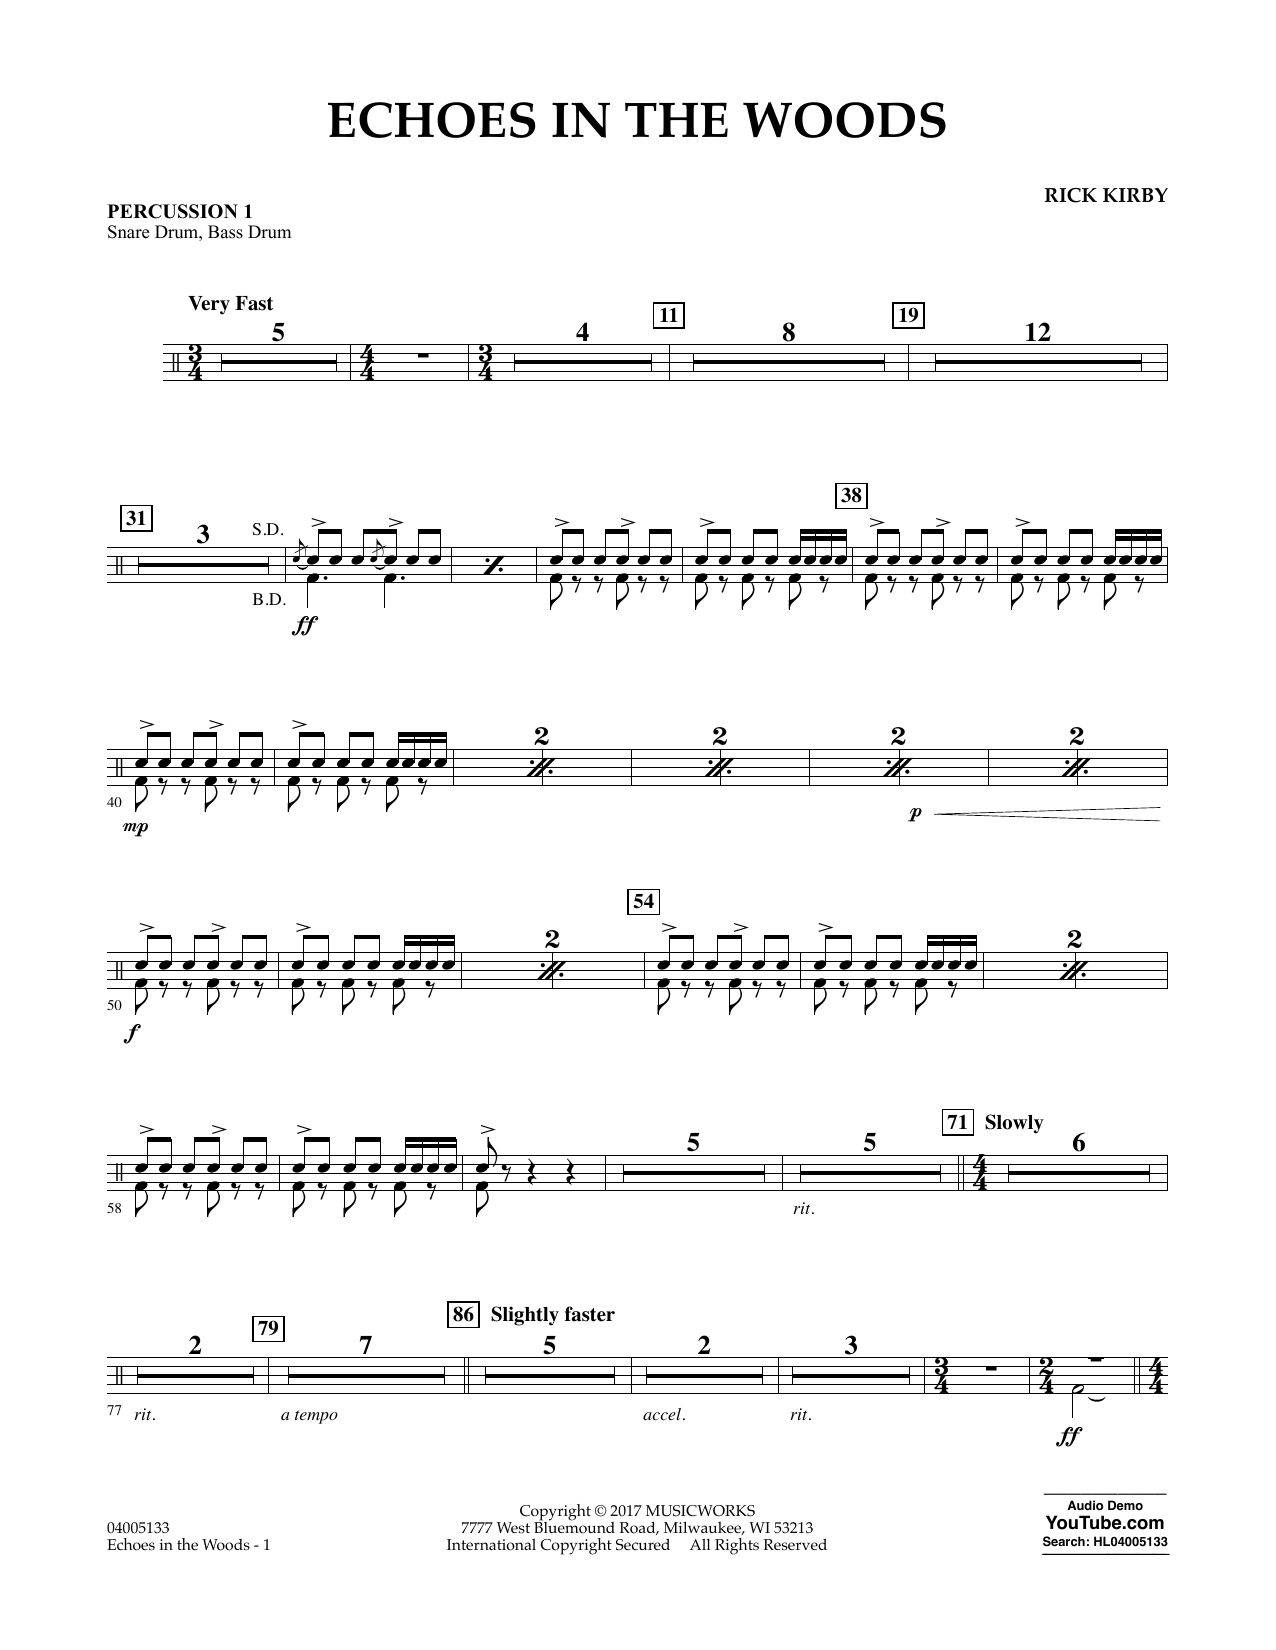 Echoes in the Woods - Percussion 1 Sheet Music